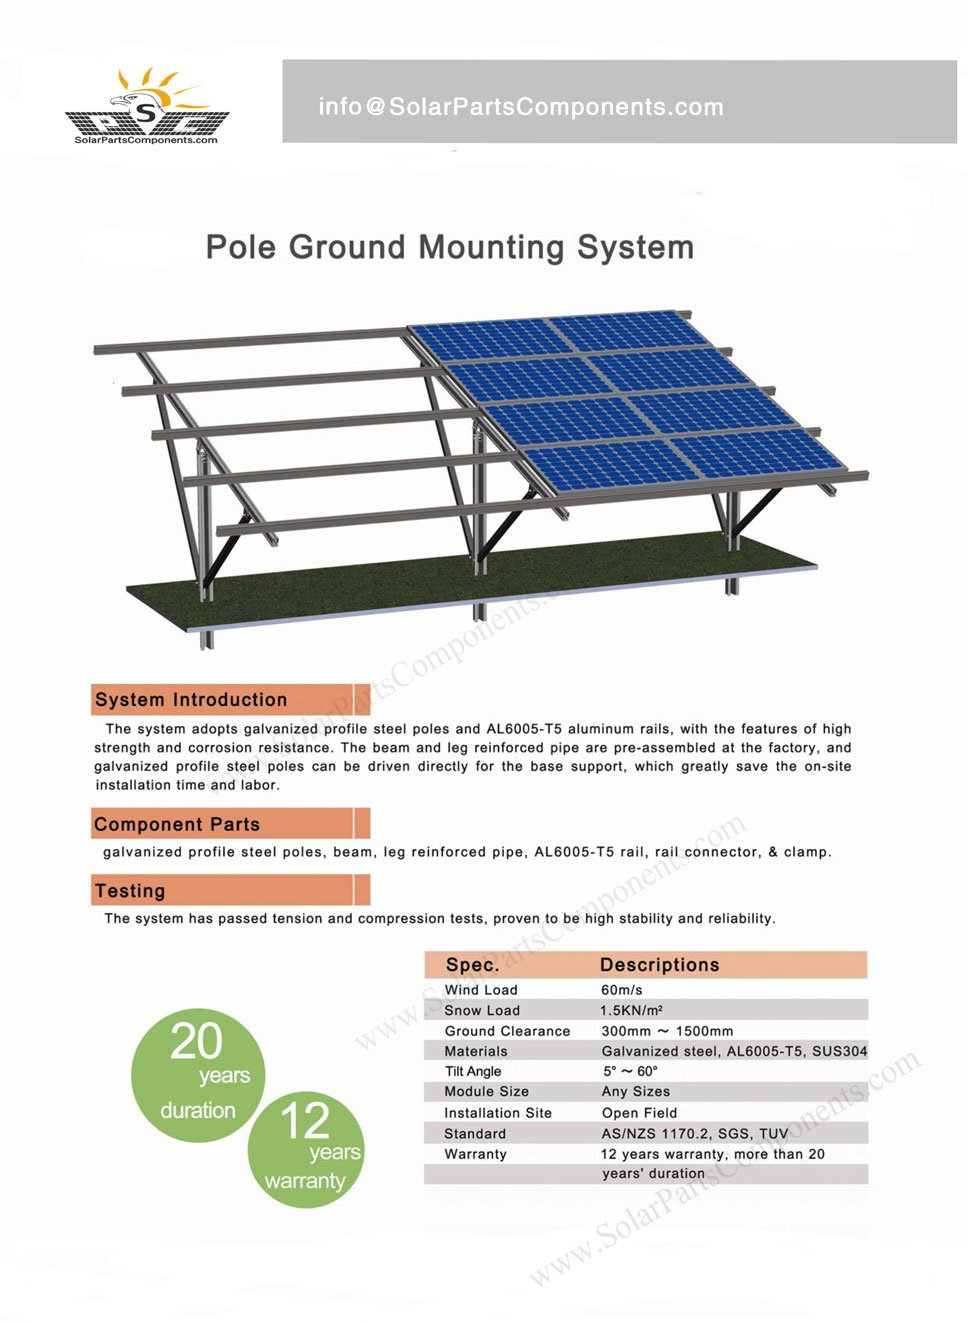 aluminum pillar ground mounting system